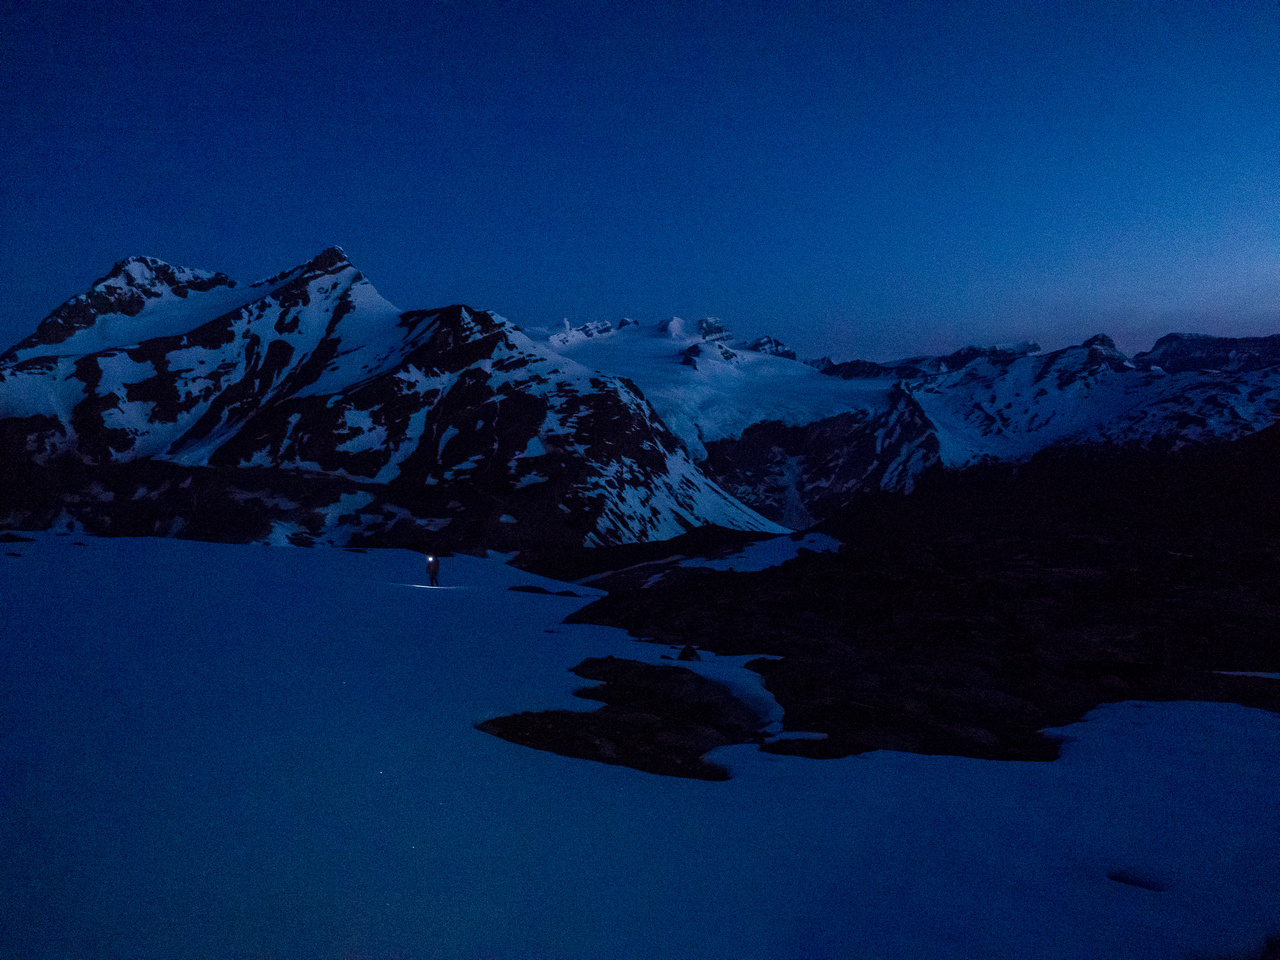 Looking back at Mike and towards the Lyells as we work our way up to the toe of the North Glacier in predawn darkness.